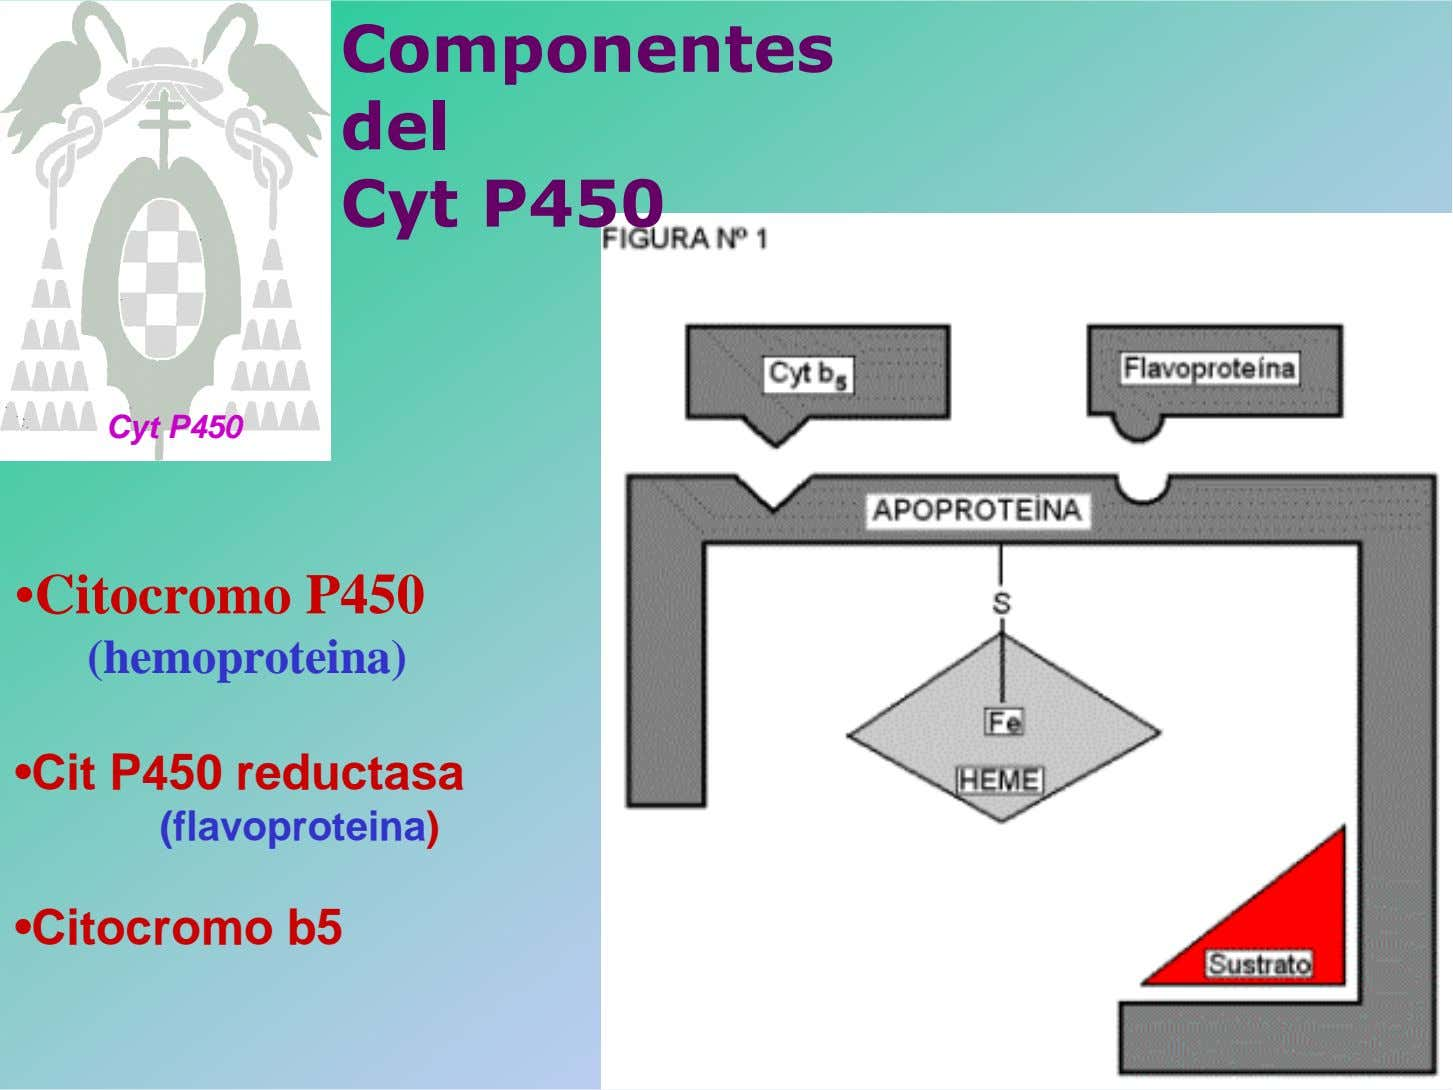 Componentes del Cyt P450 Cyt P450 •Citocromo P450 (hemoproteina) •Cit P450 reductasa (flavoproteina)